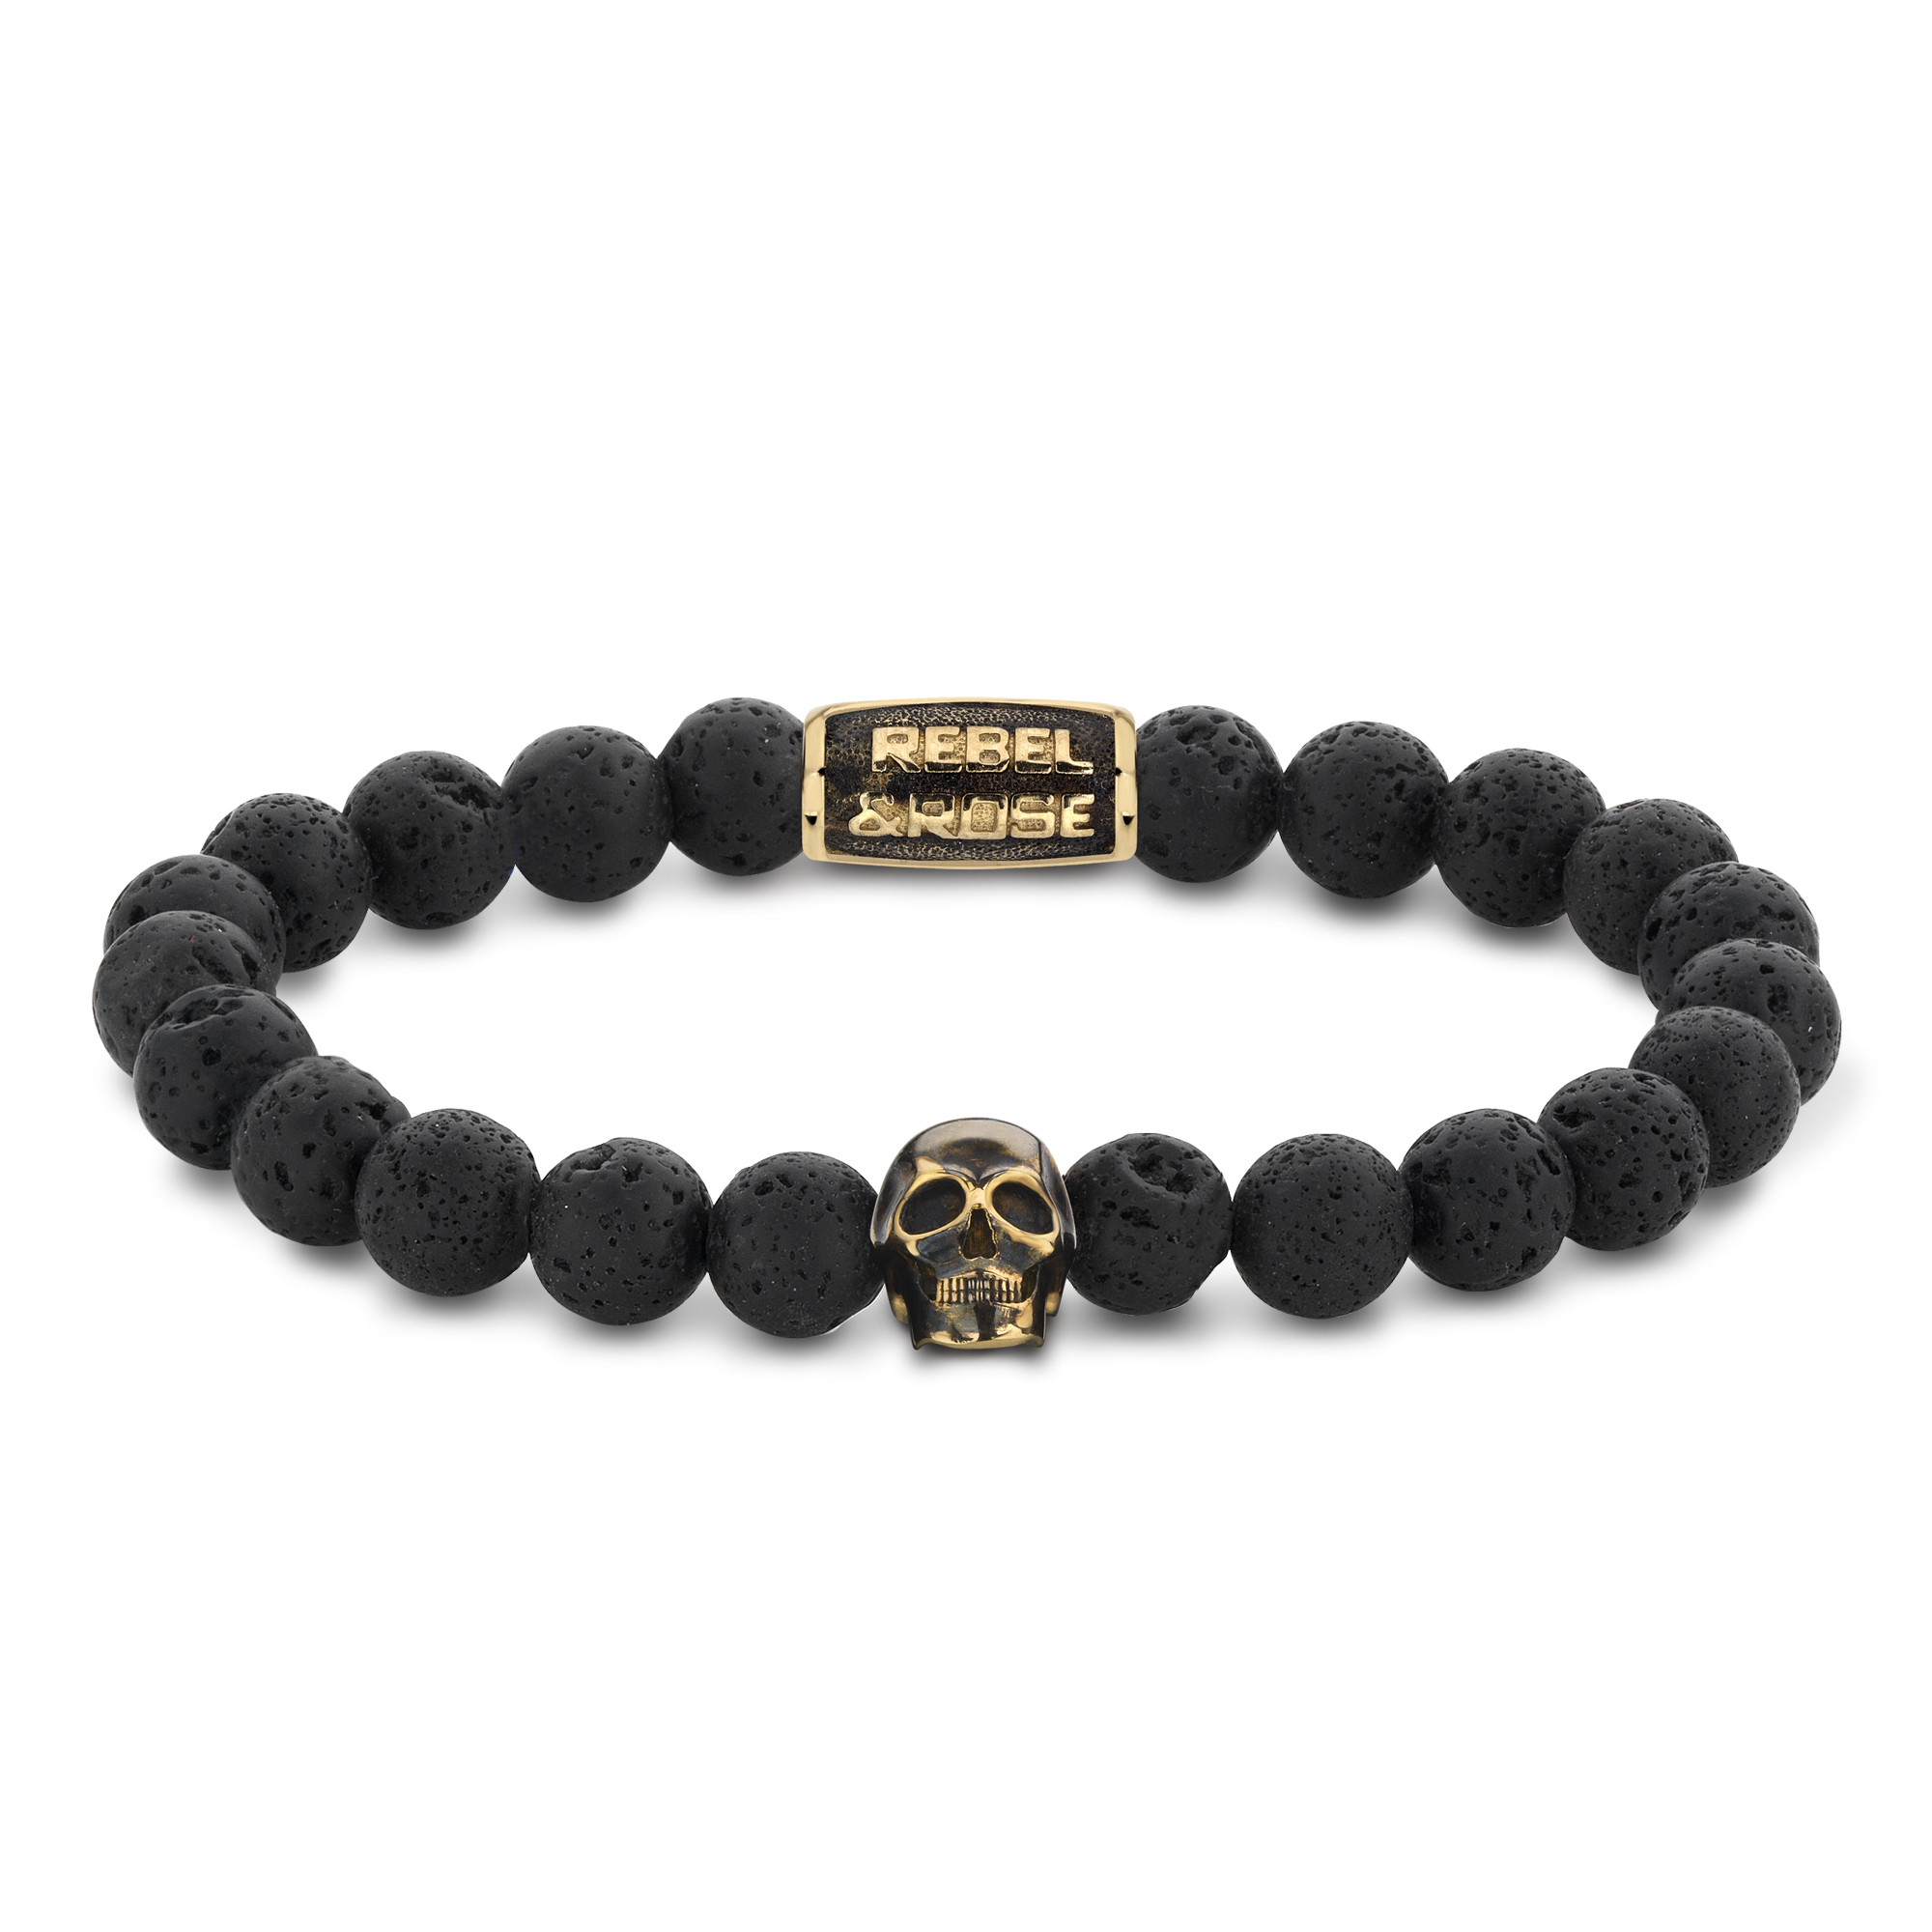 Rebel and Rose RR-SK002-G-XL Armband Skull Black Moon yellow gold plated XL 8mm 21.0